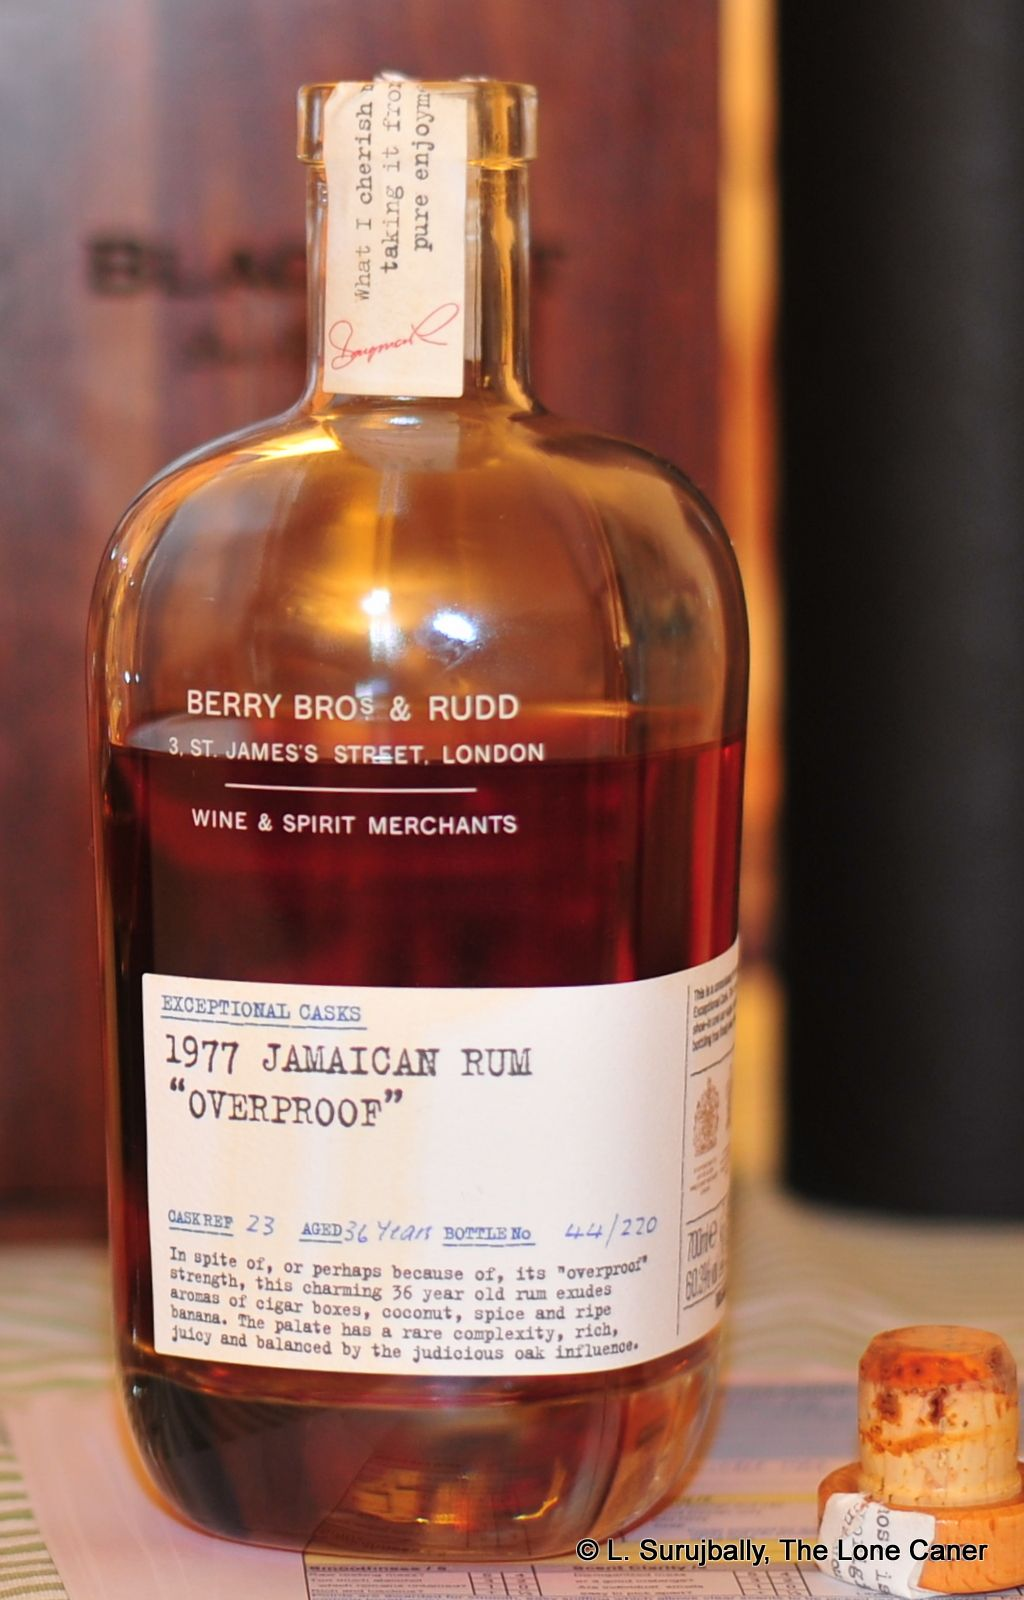 Berry Bros Rudd 1977 36 Year Old Jamaica Rum Licor Ron Cerveza